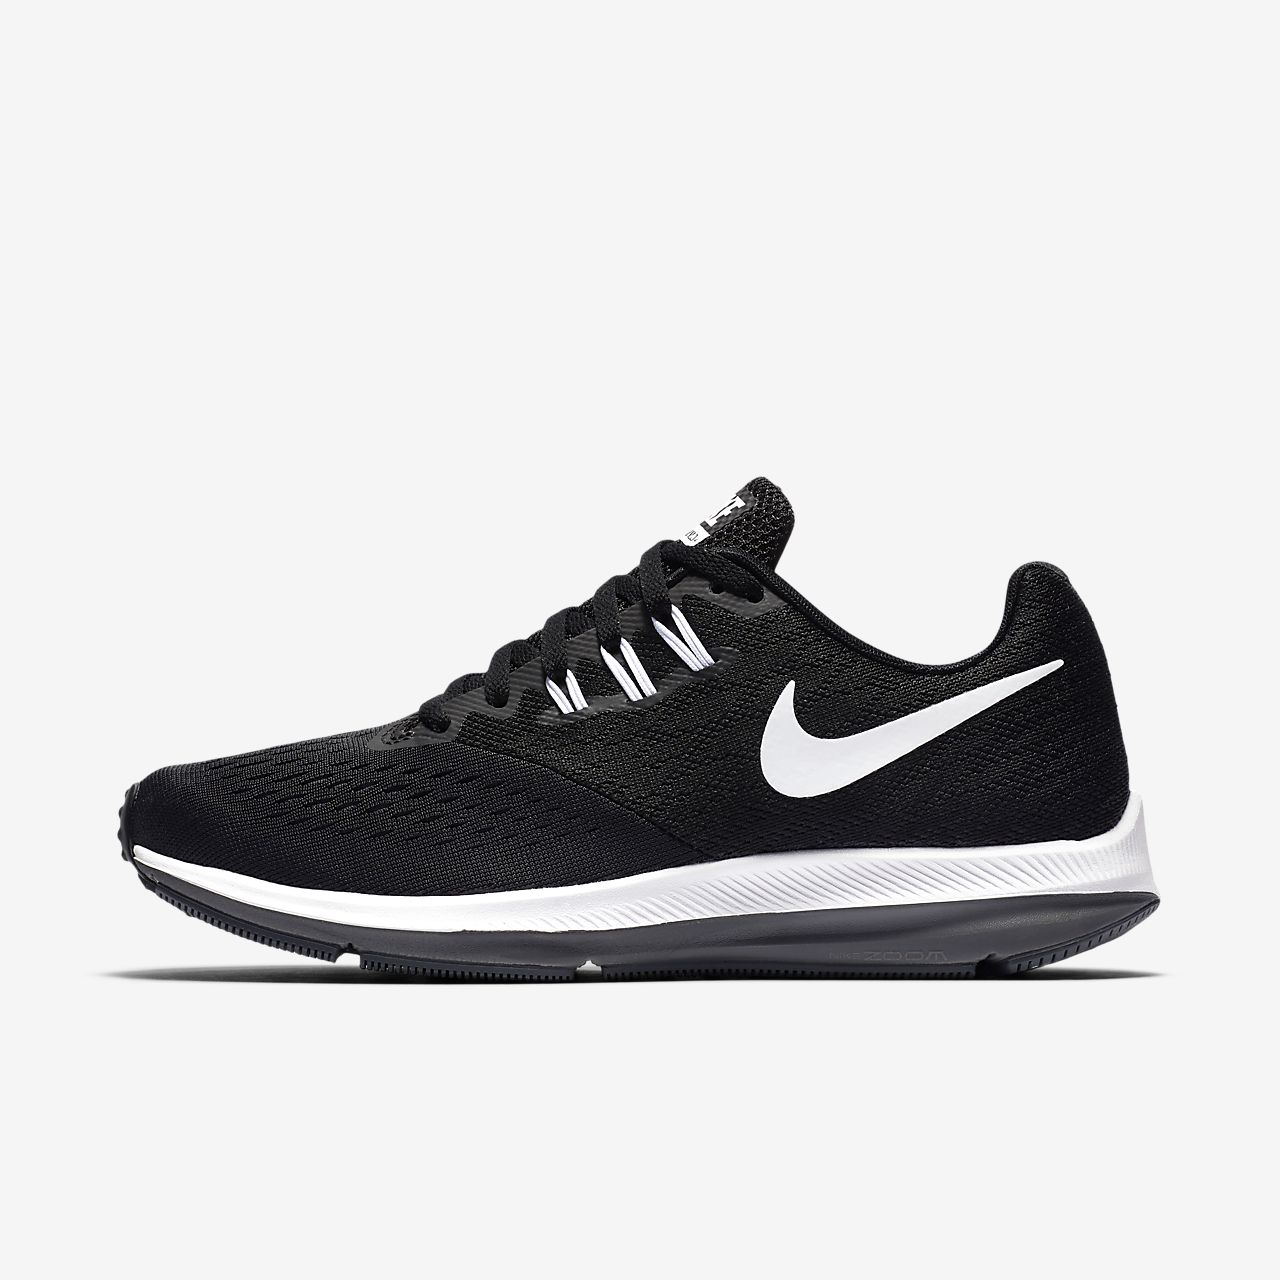 Nike da Donna Run All Day Scarpe da corsa 898484 Scarpe da tennis 005